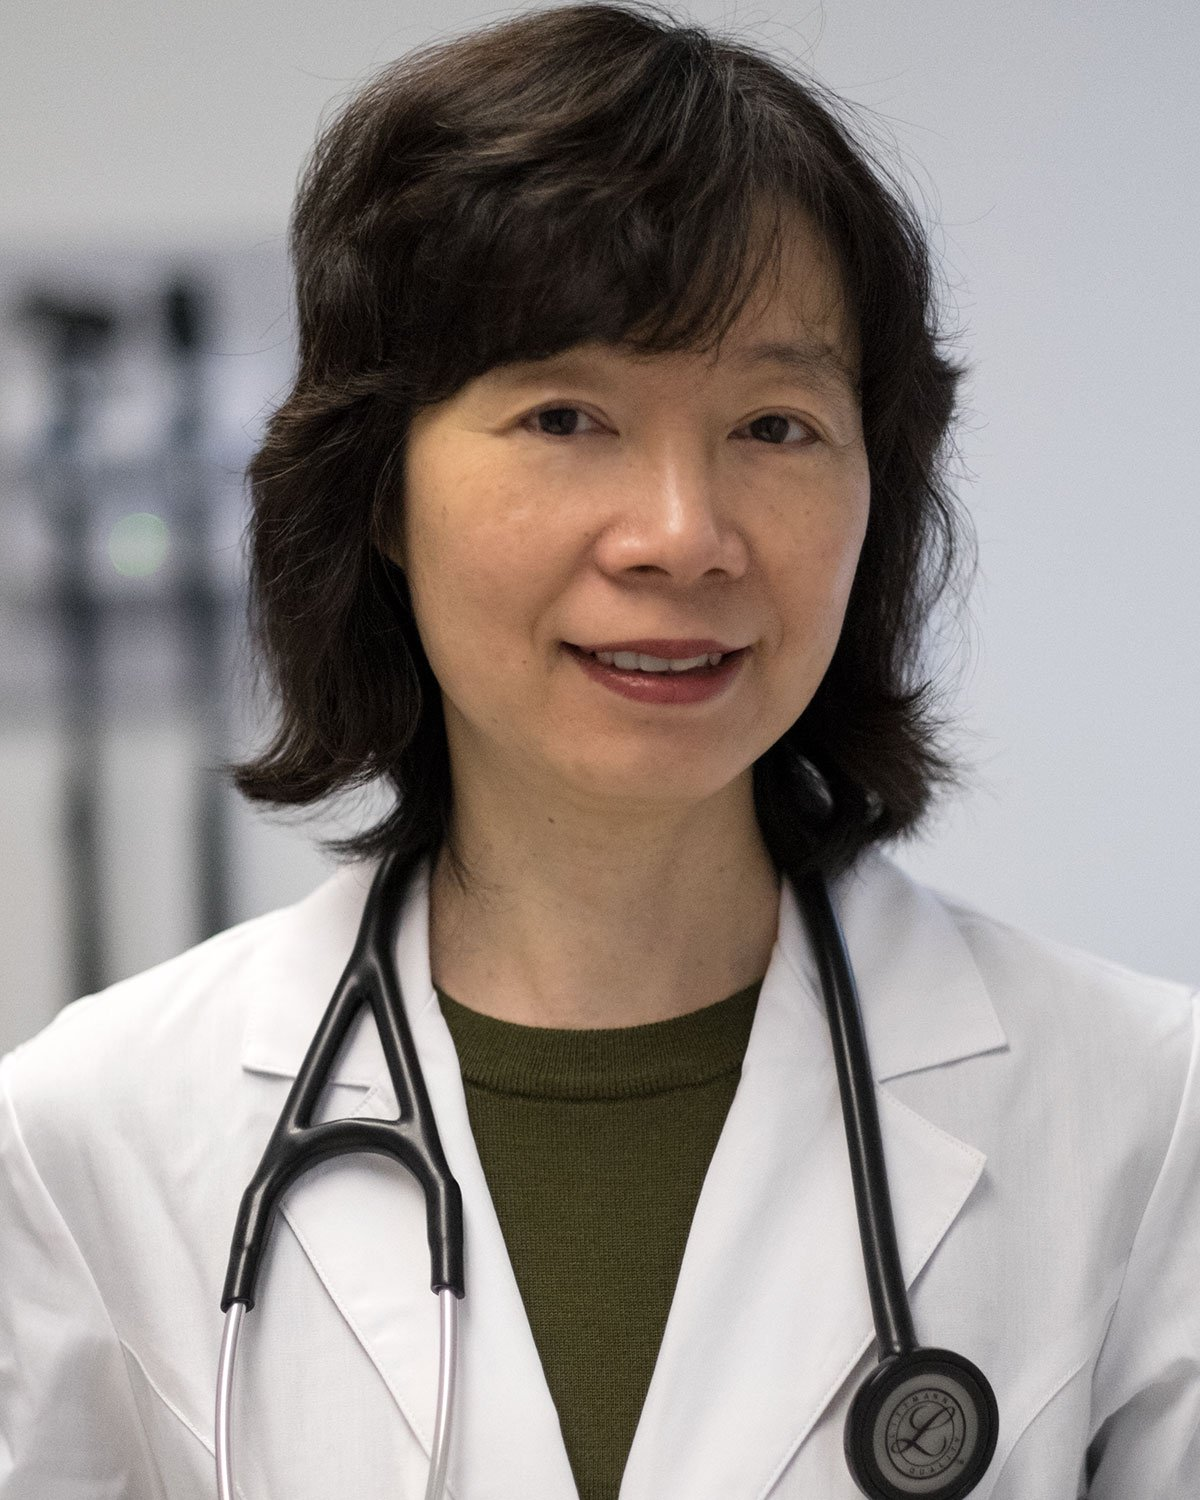 Dr.Lili Kung M.D.